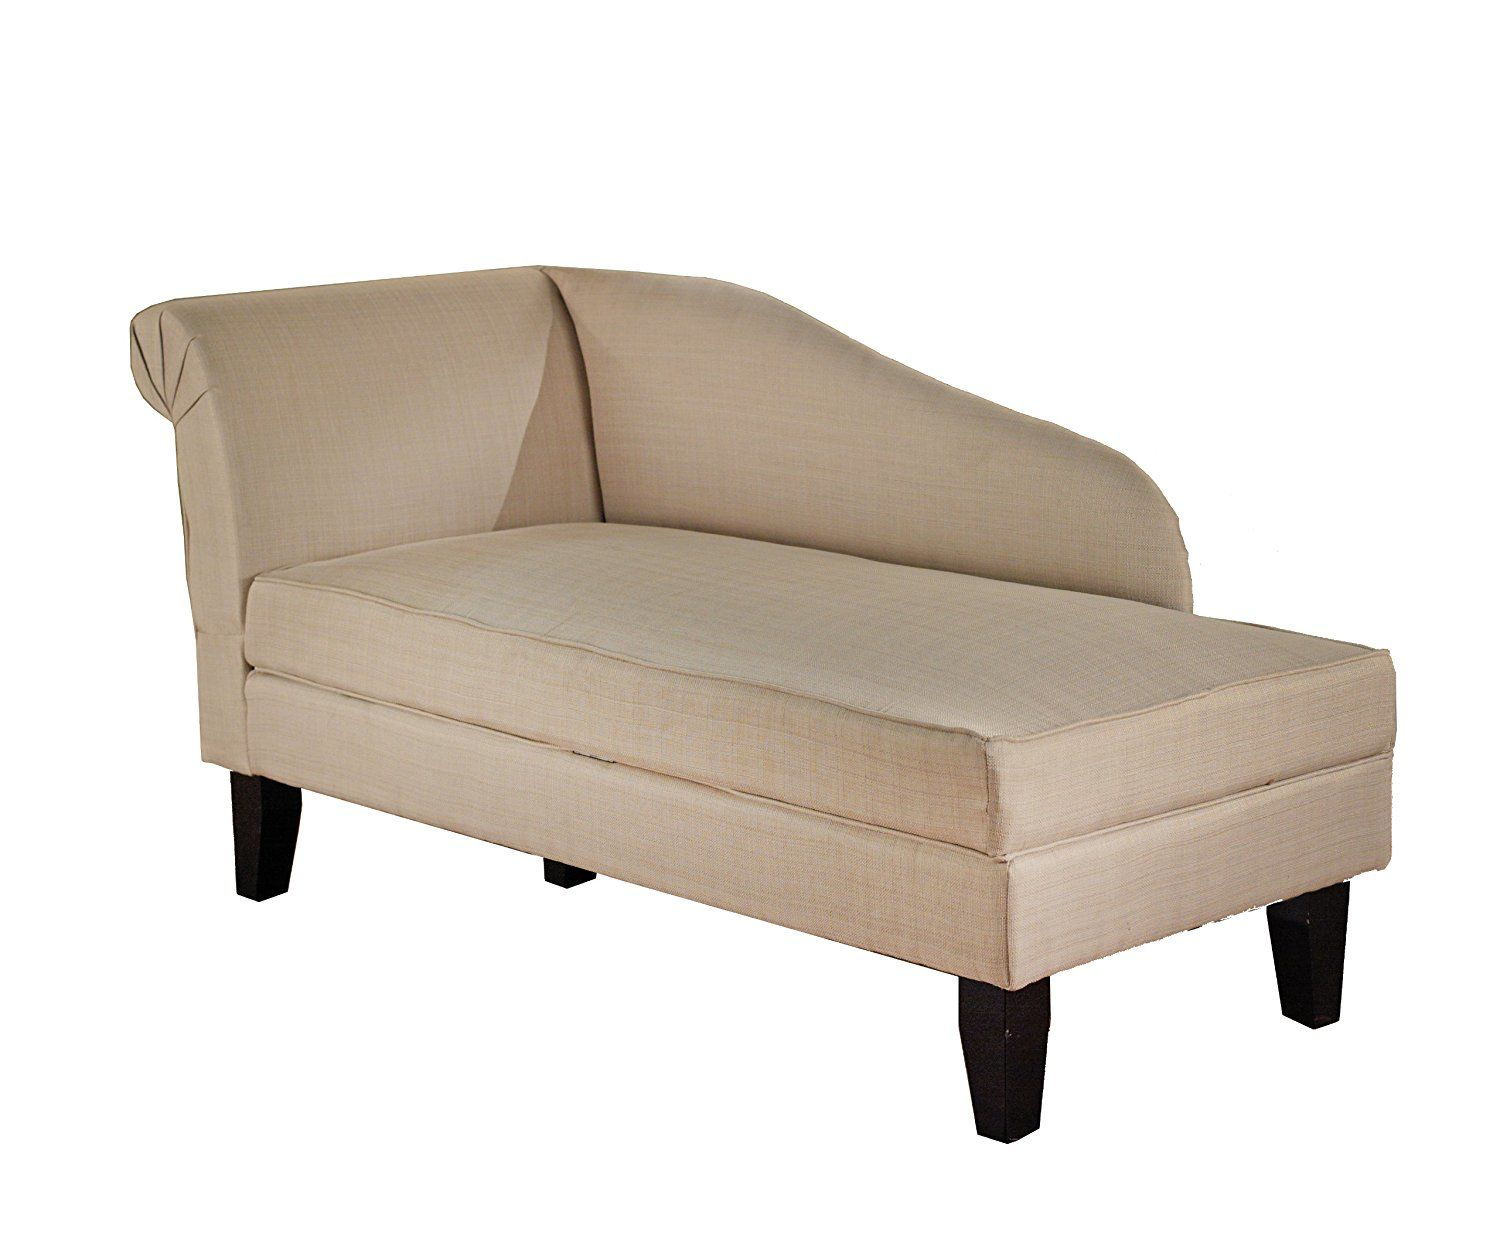 best of amazon sofa bed concept-Fresh Amazon sofa Bed Online